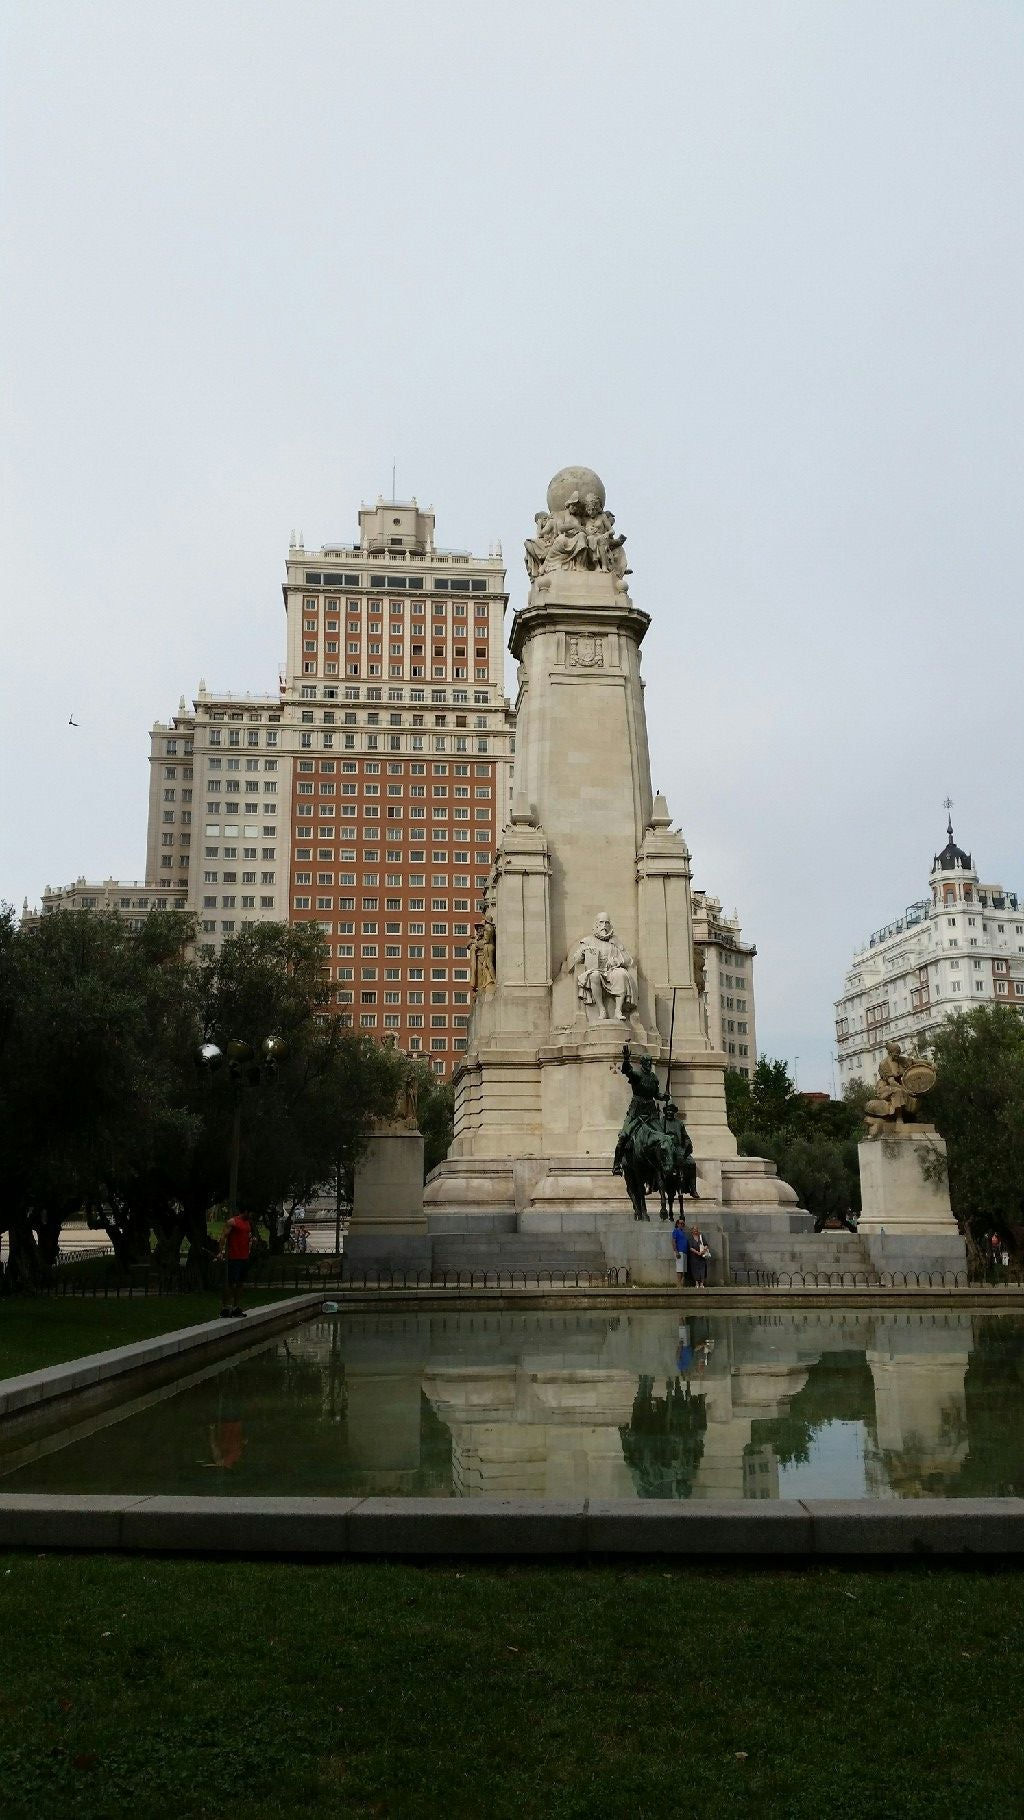 Memorial en Plaza de España de Madrid